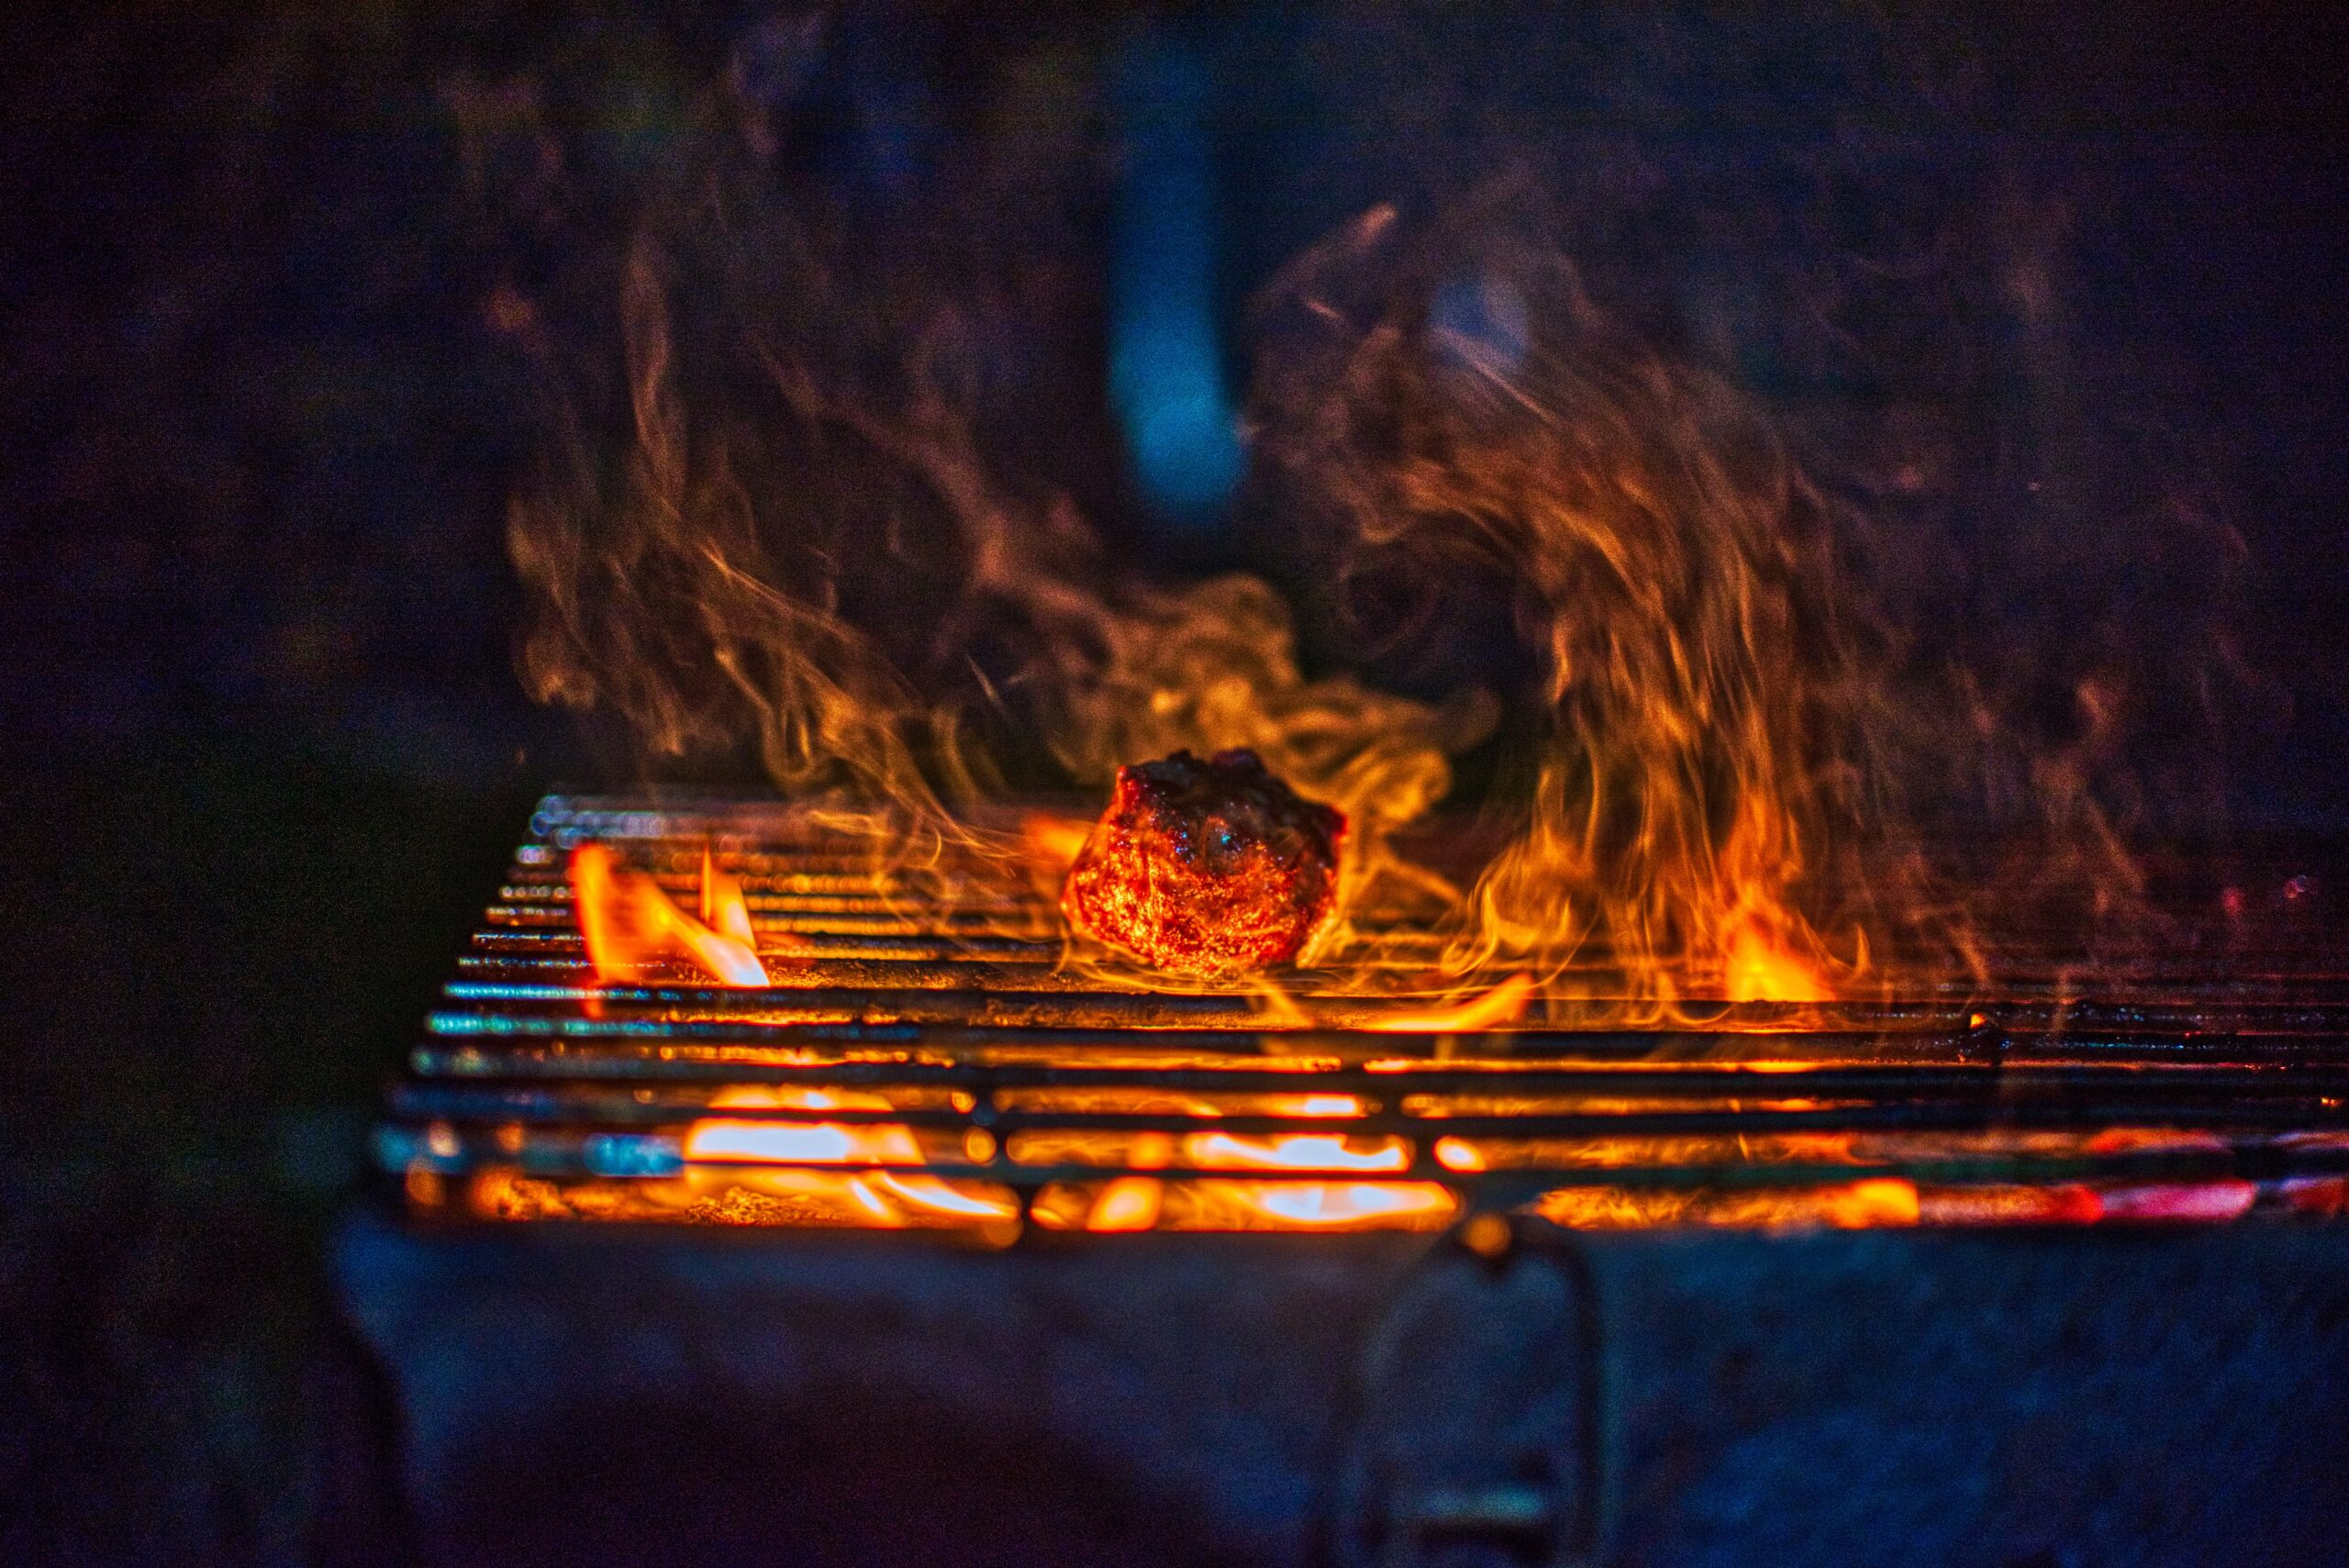 fire on black charcoal grill